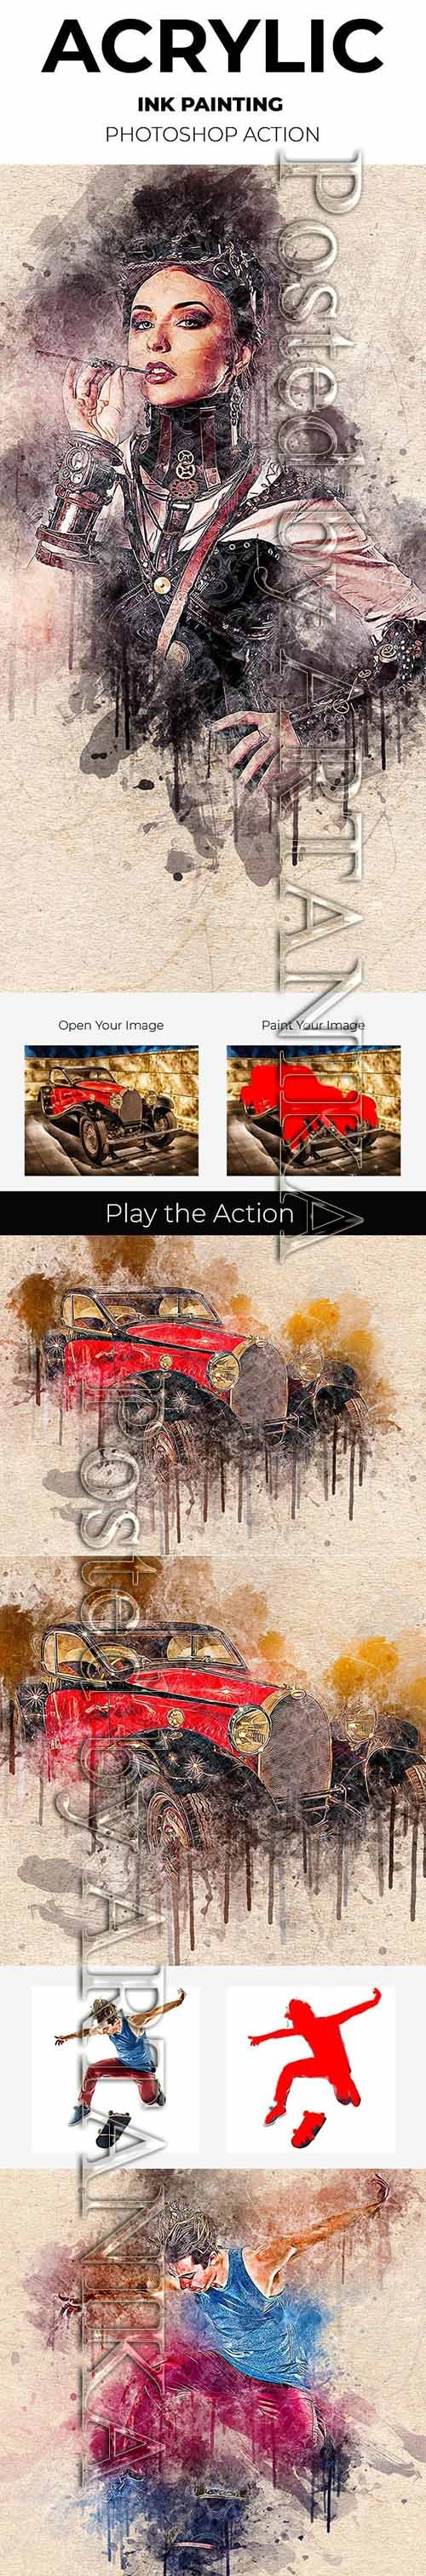 Graphicriver - Acrylic Ink Painting Photoshop Action 21293731